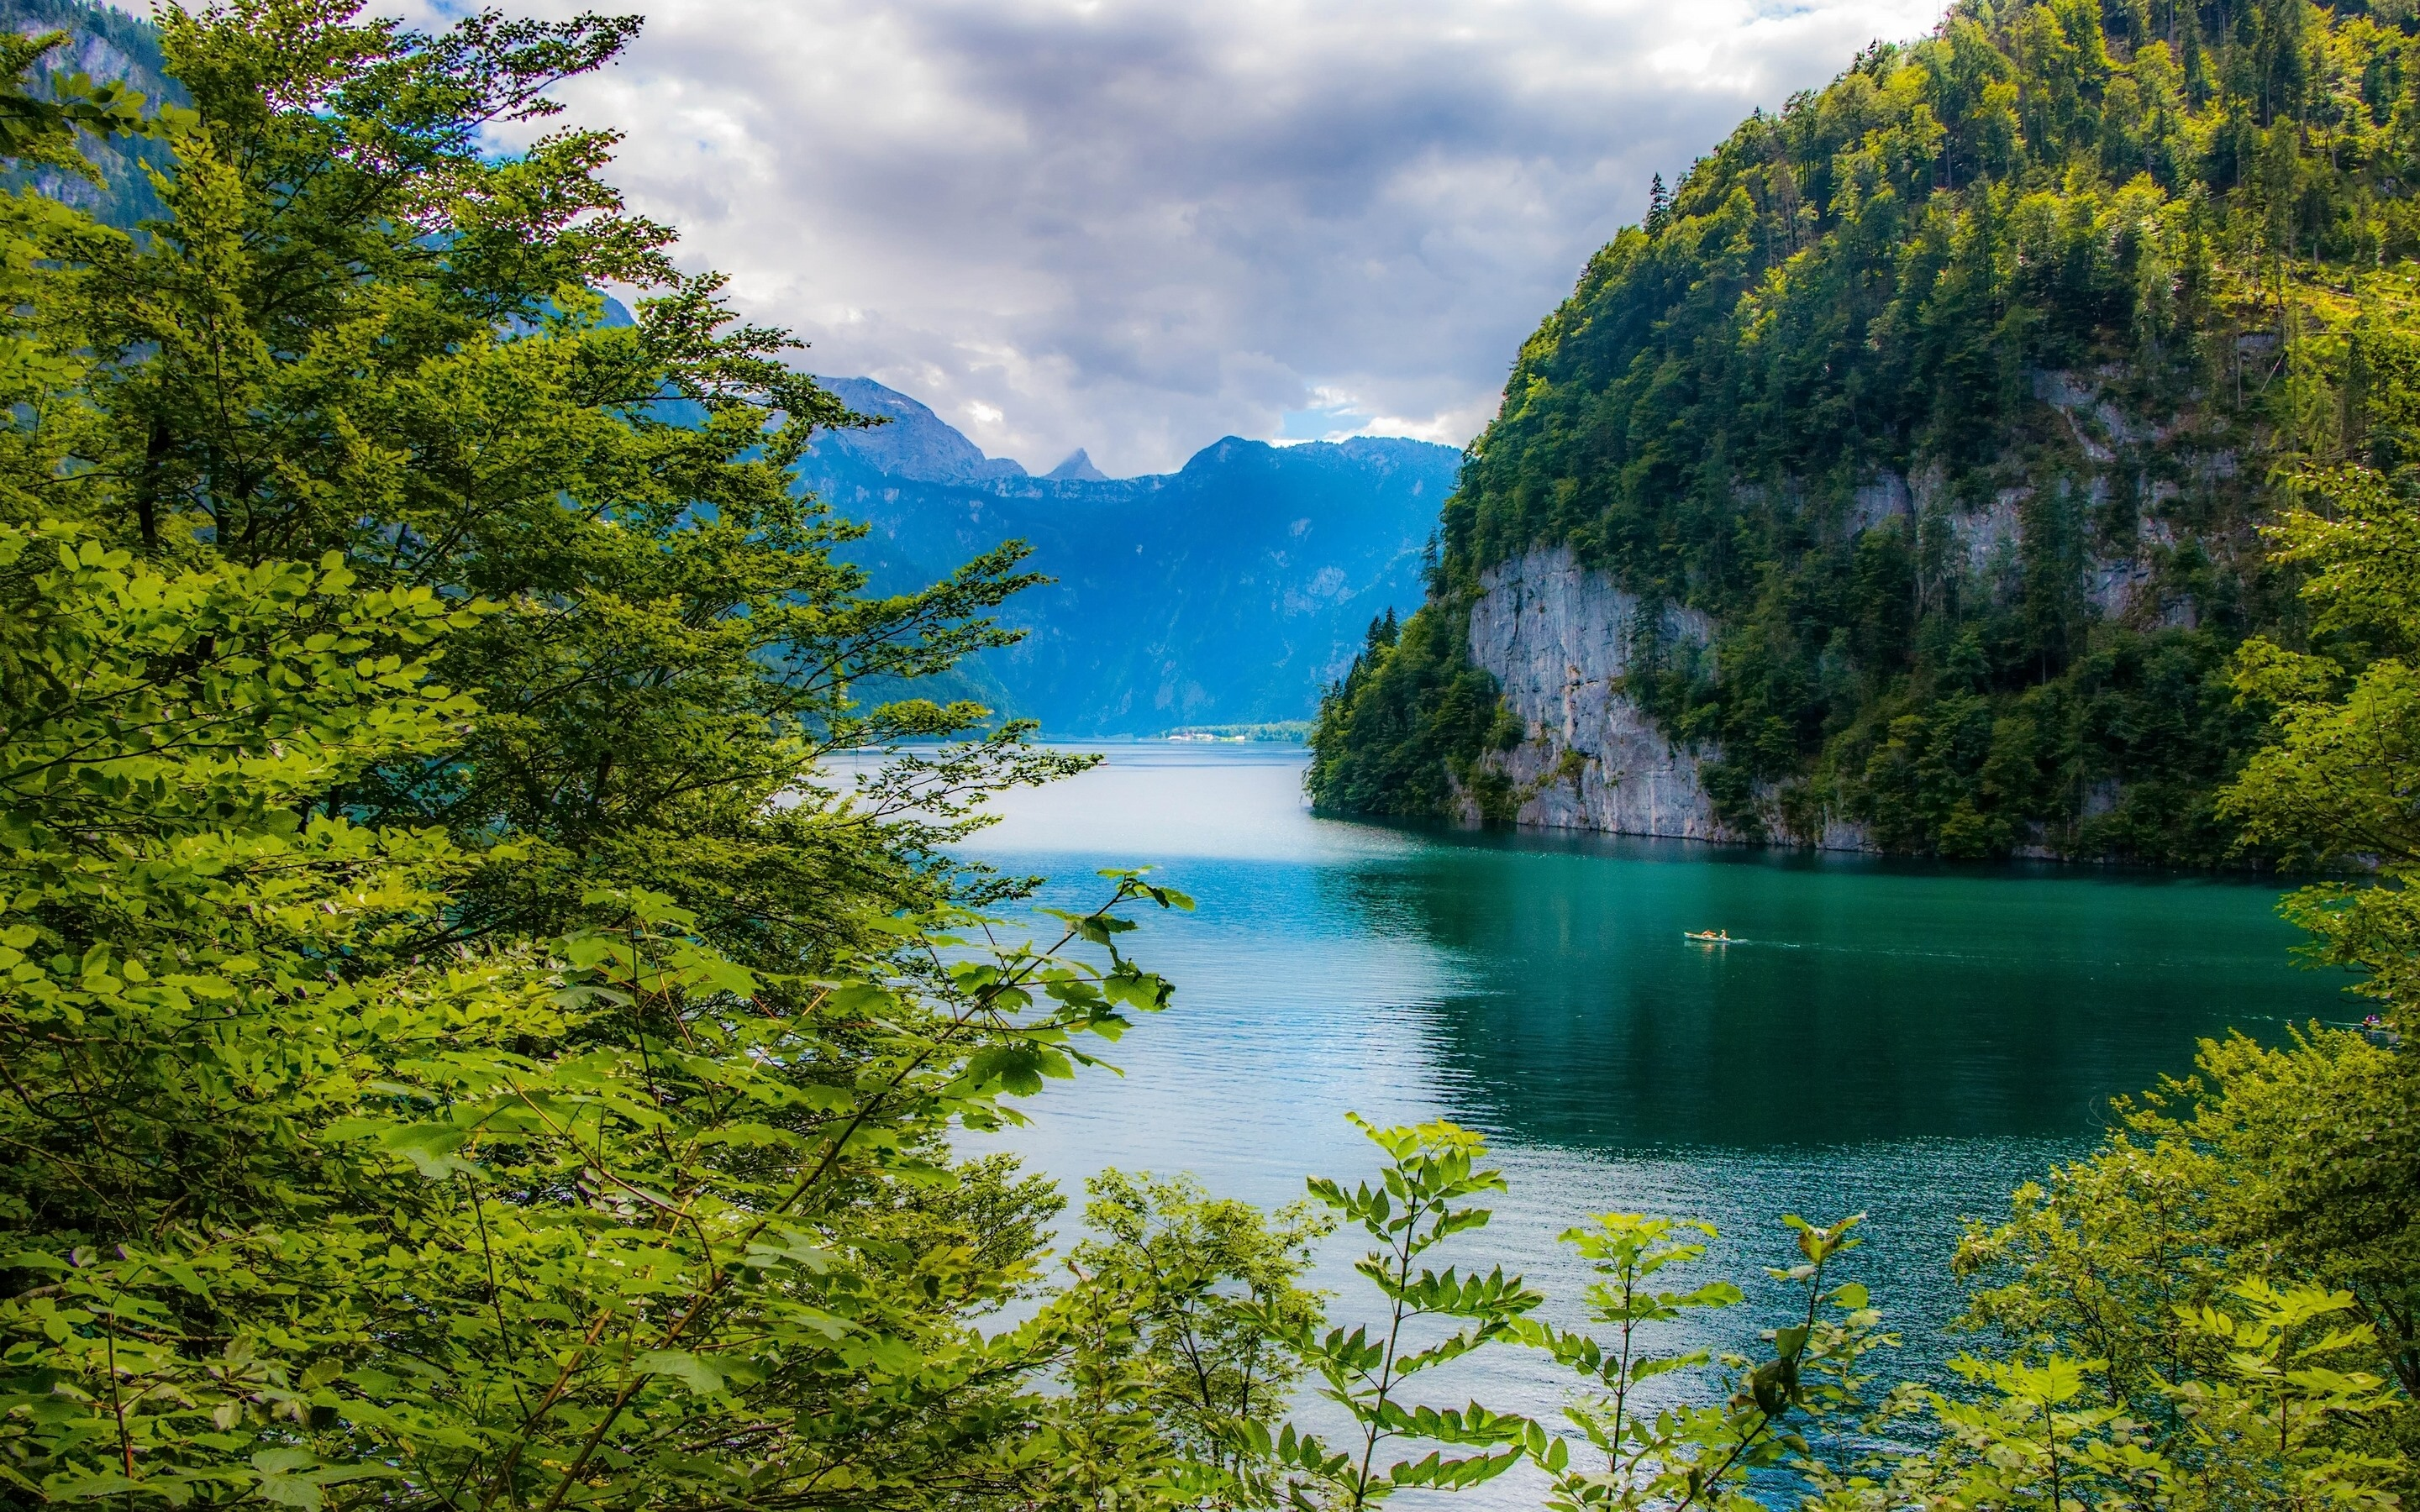 Wallpaper Bavaria Germany Lake Mountains Trees Green Beautiful Scenery 2880x1800 Hd Picture Image